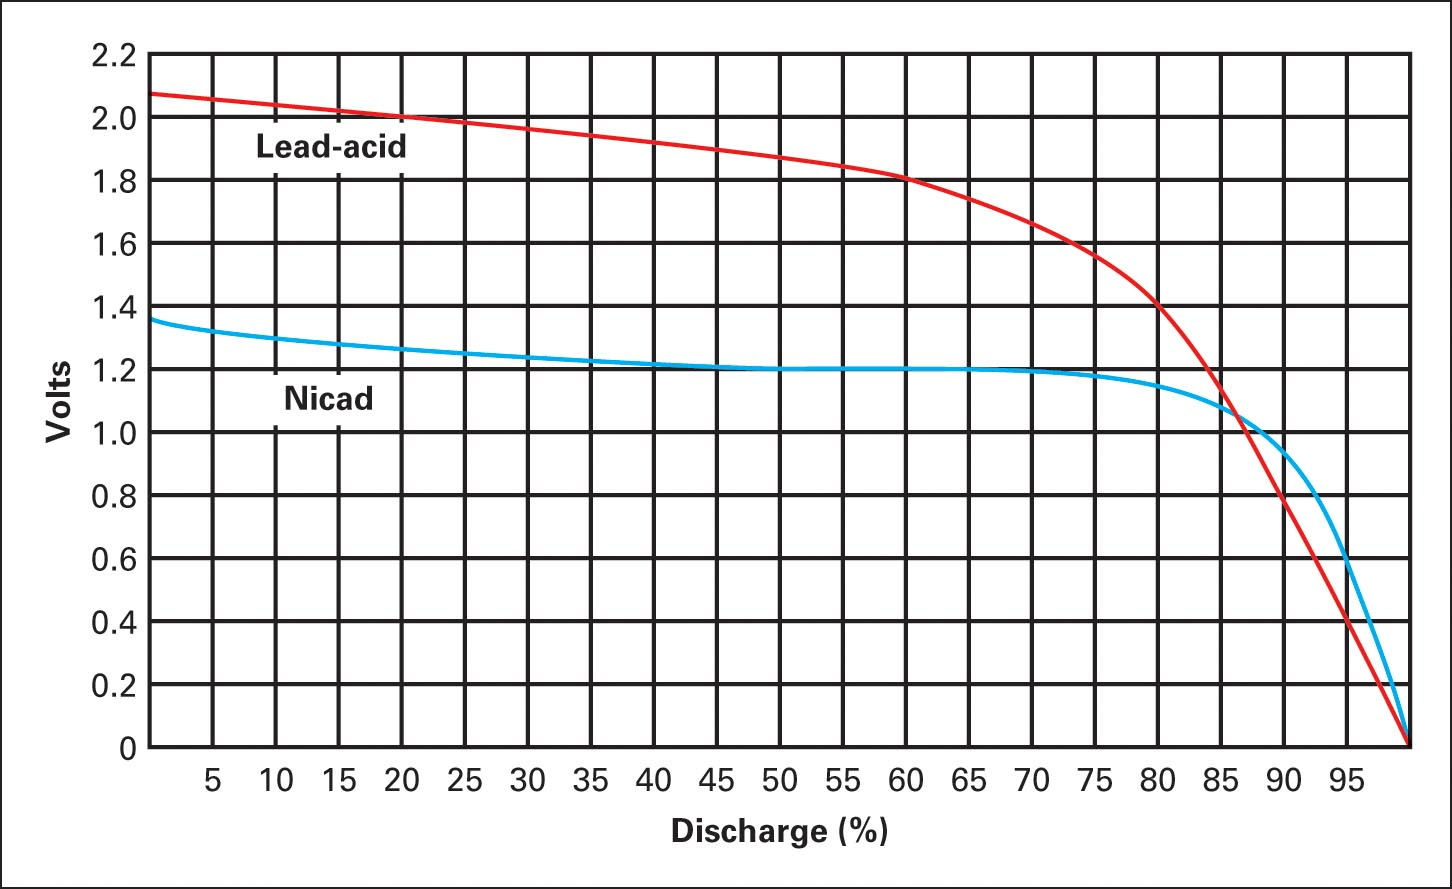 Typical discharge curves for NiCad and lead-acid cells